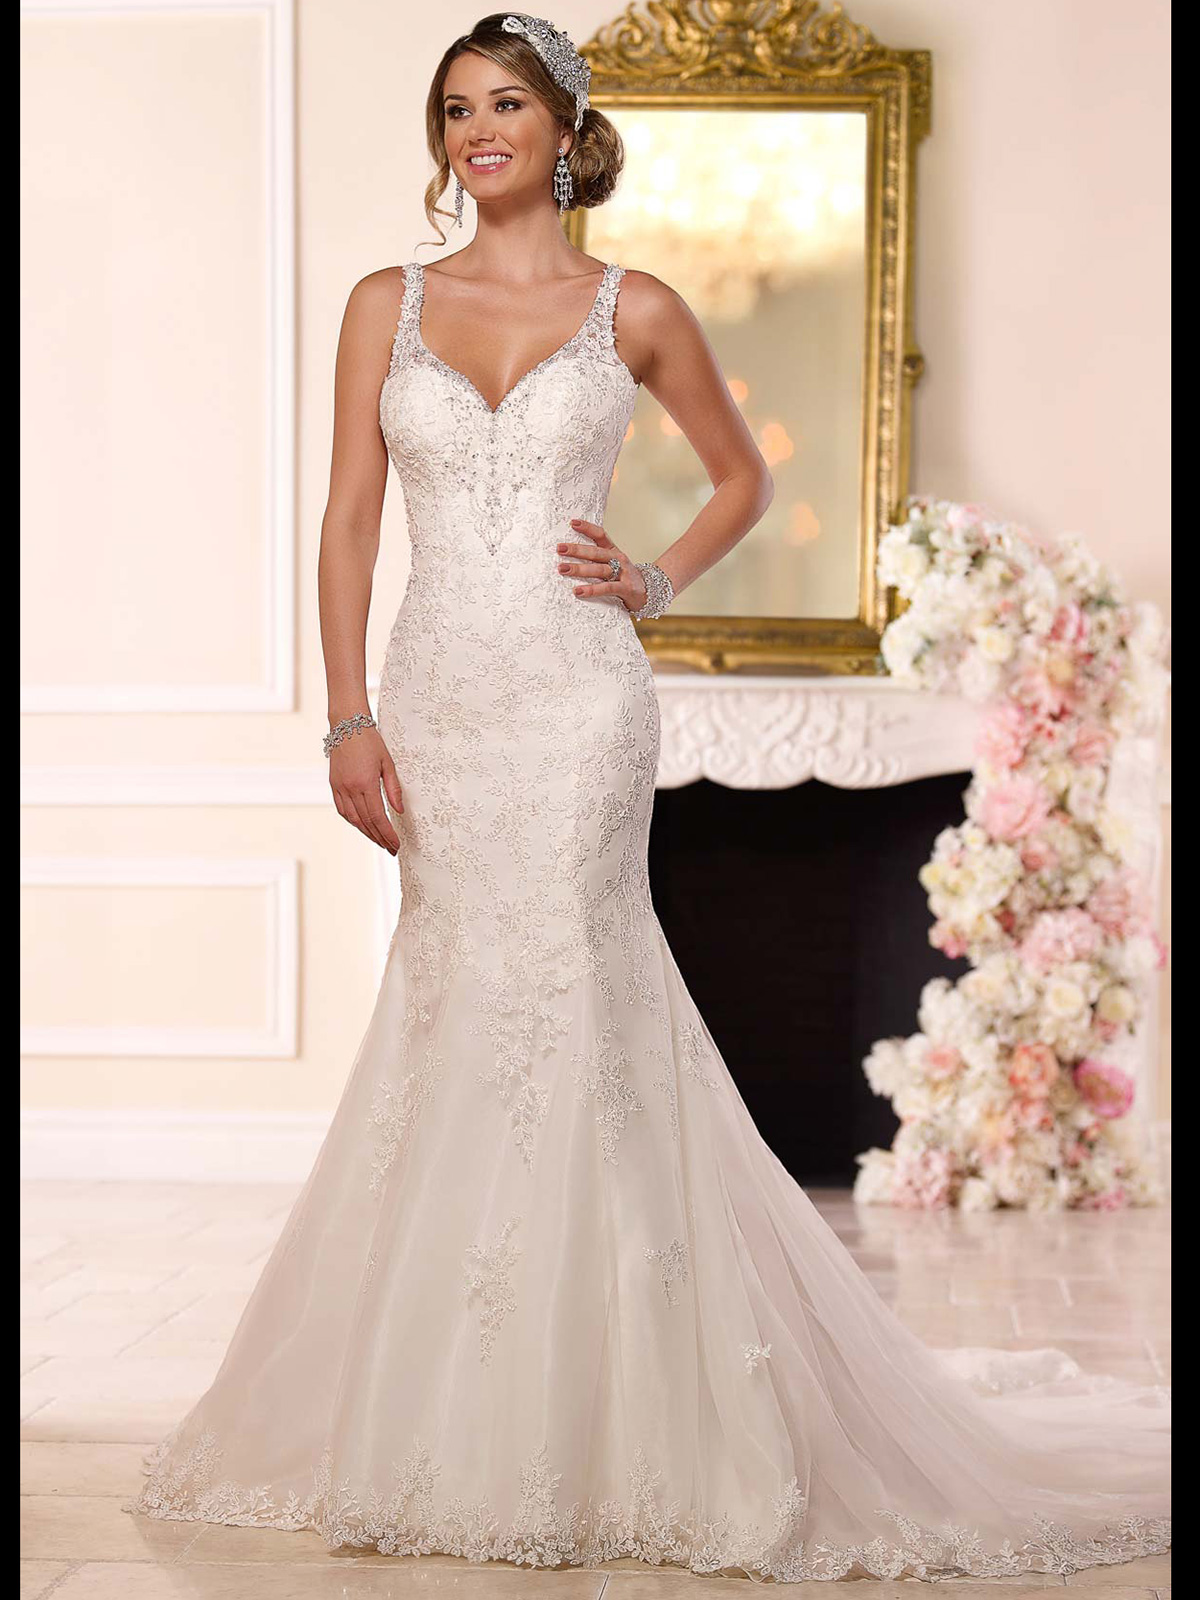 Stella York 6217 V-neck Fit And Flare Wedding Dress|DimitraDesigns.com